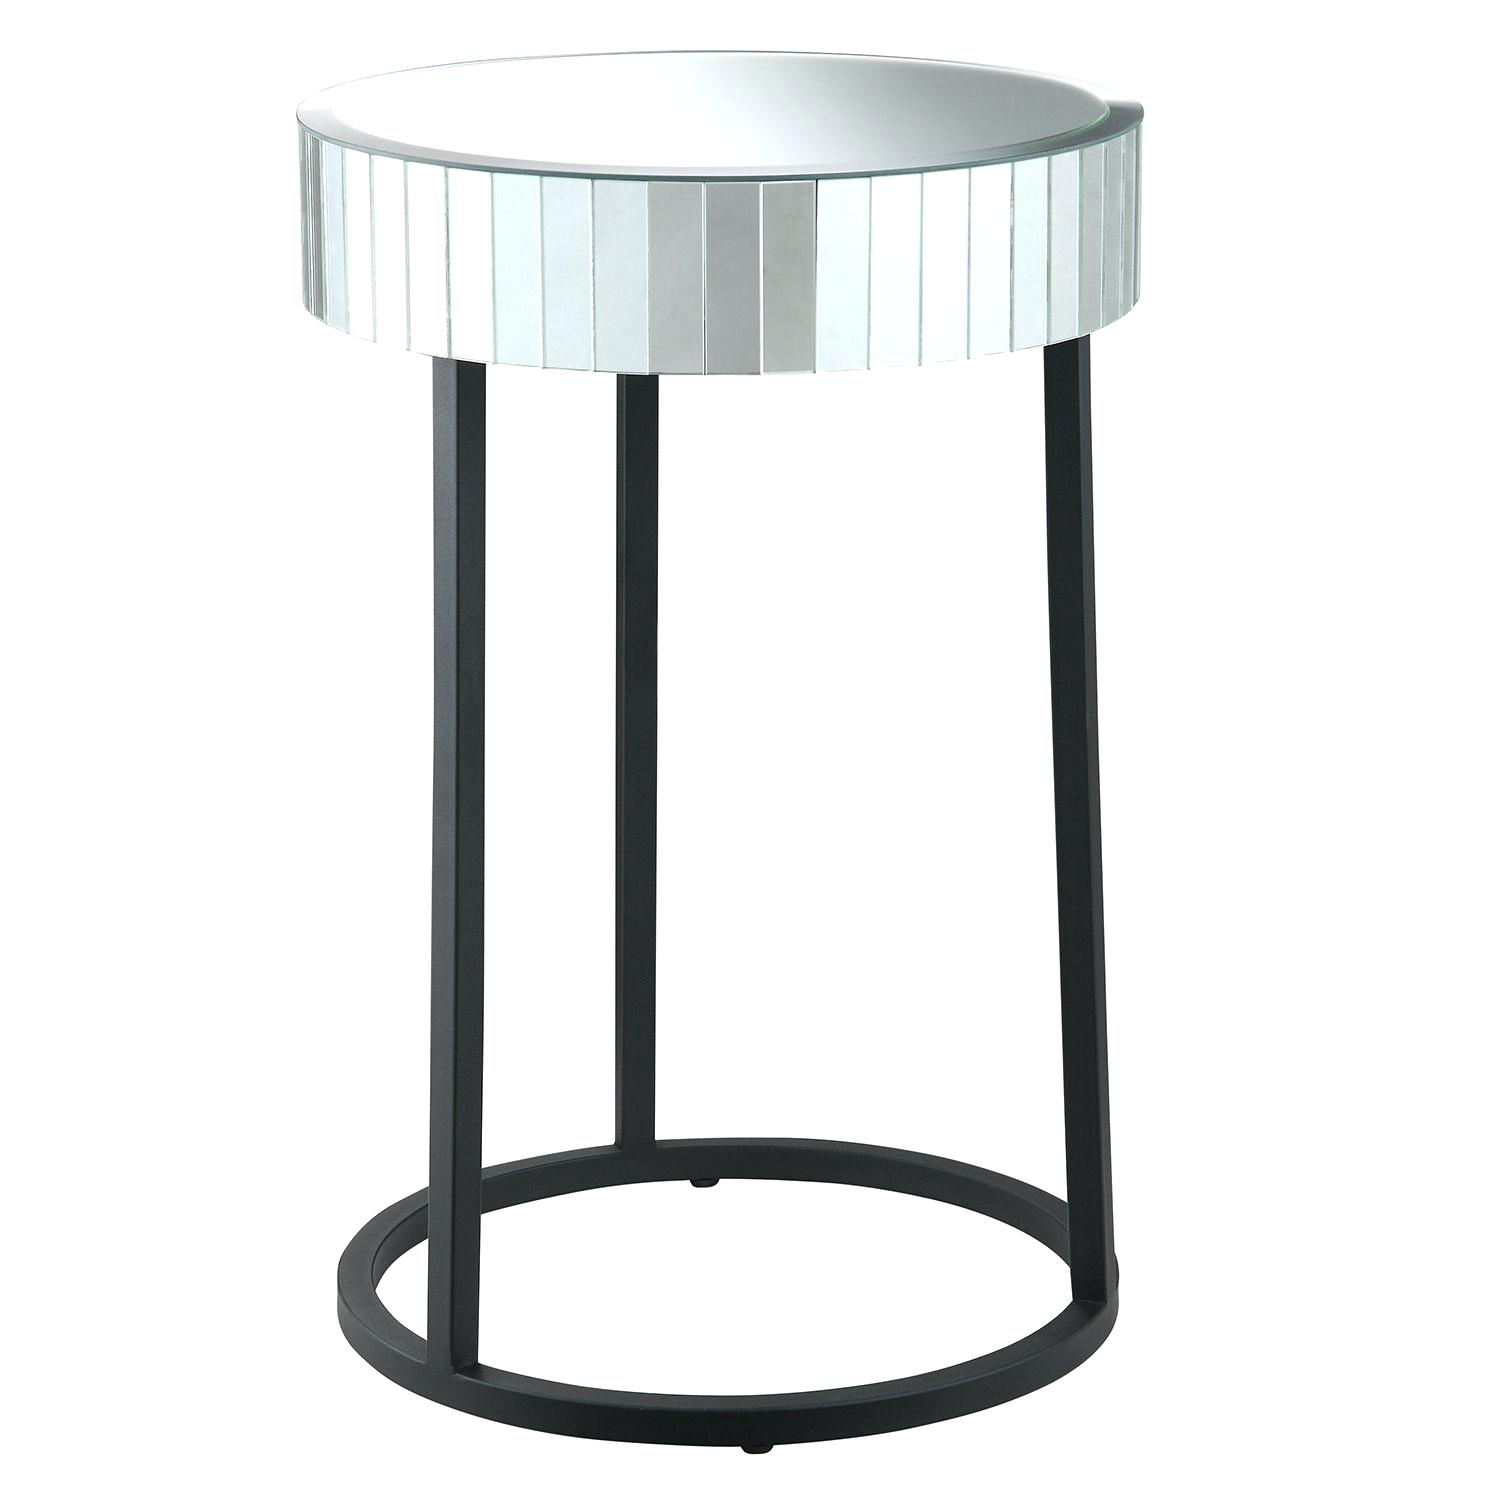 round mirror accent table pier tables mosaic lavorochogan info black mirrored target circular bedroom decoration box ikea trestle bench legs low coffee furniture wall straps